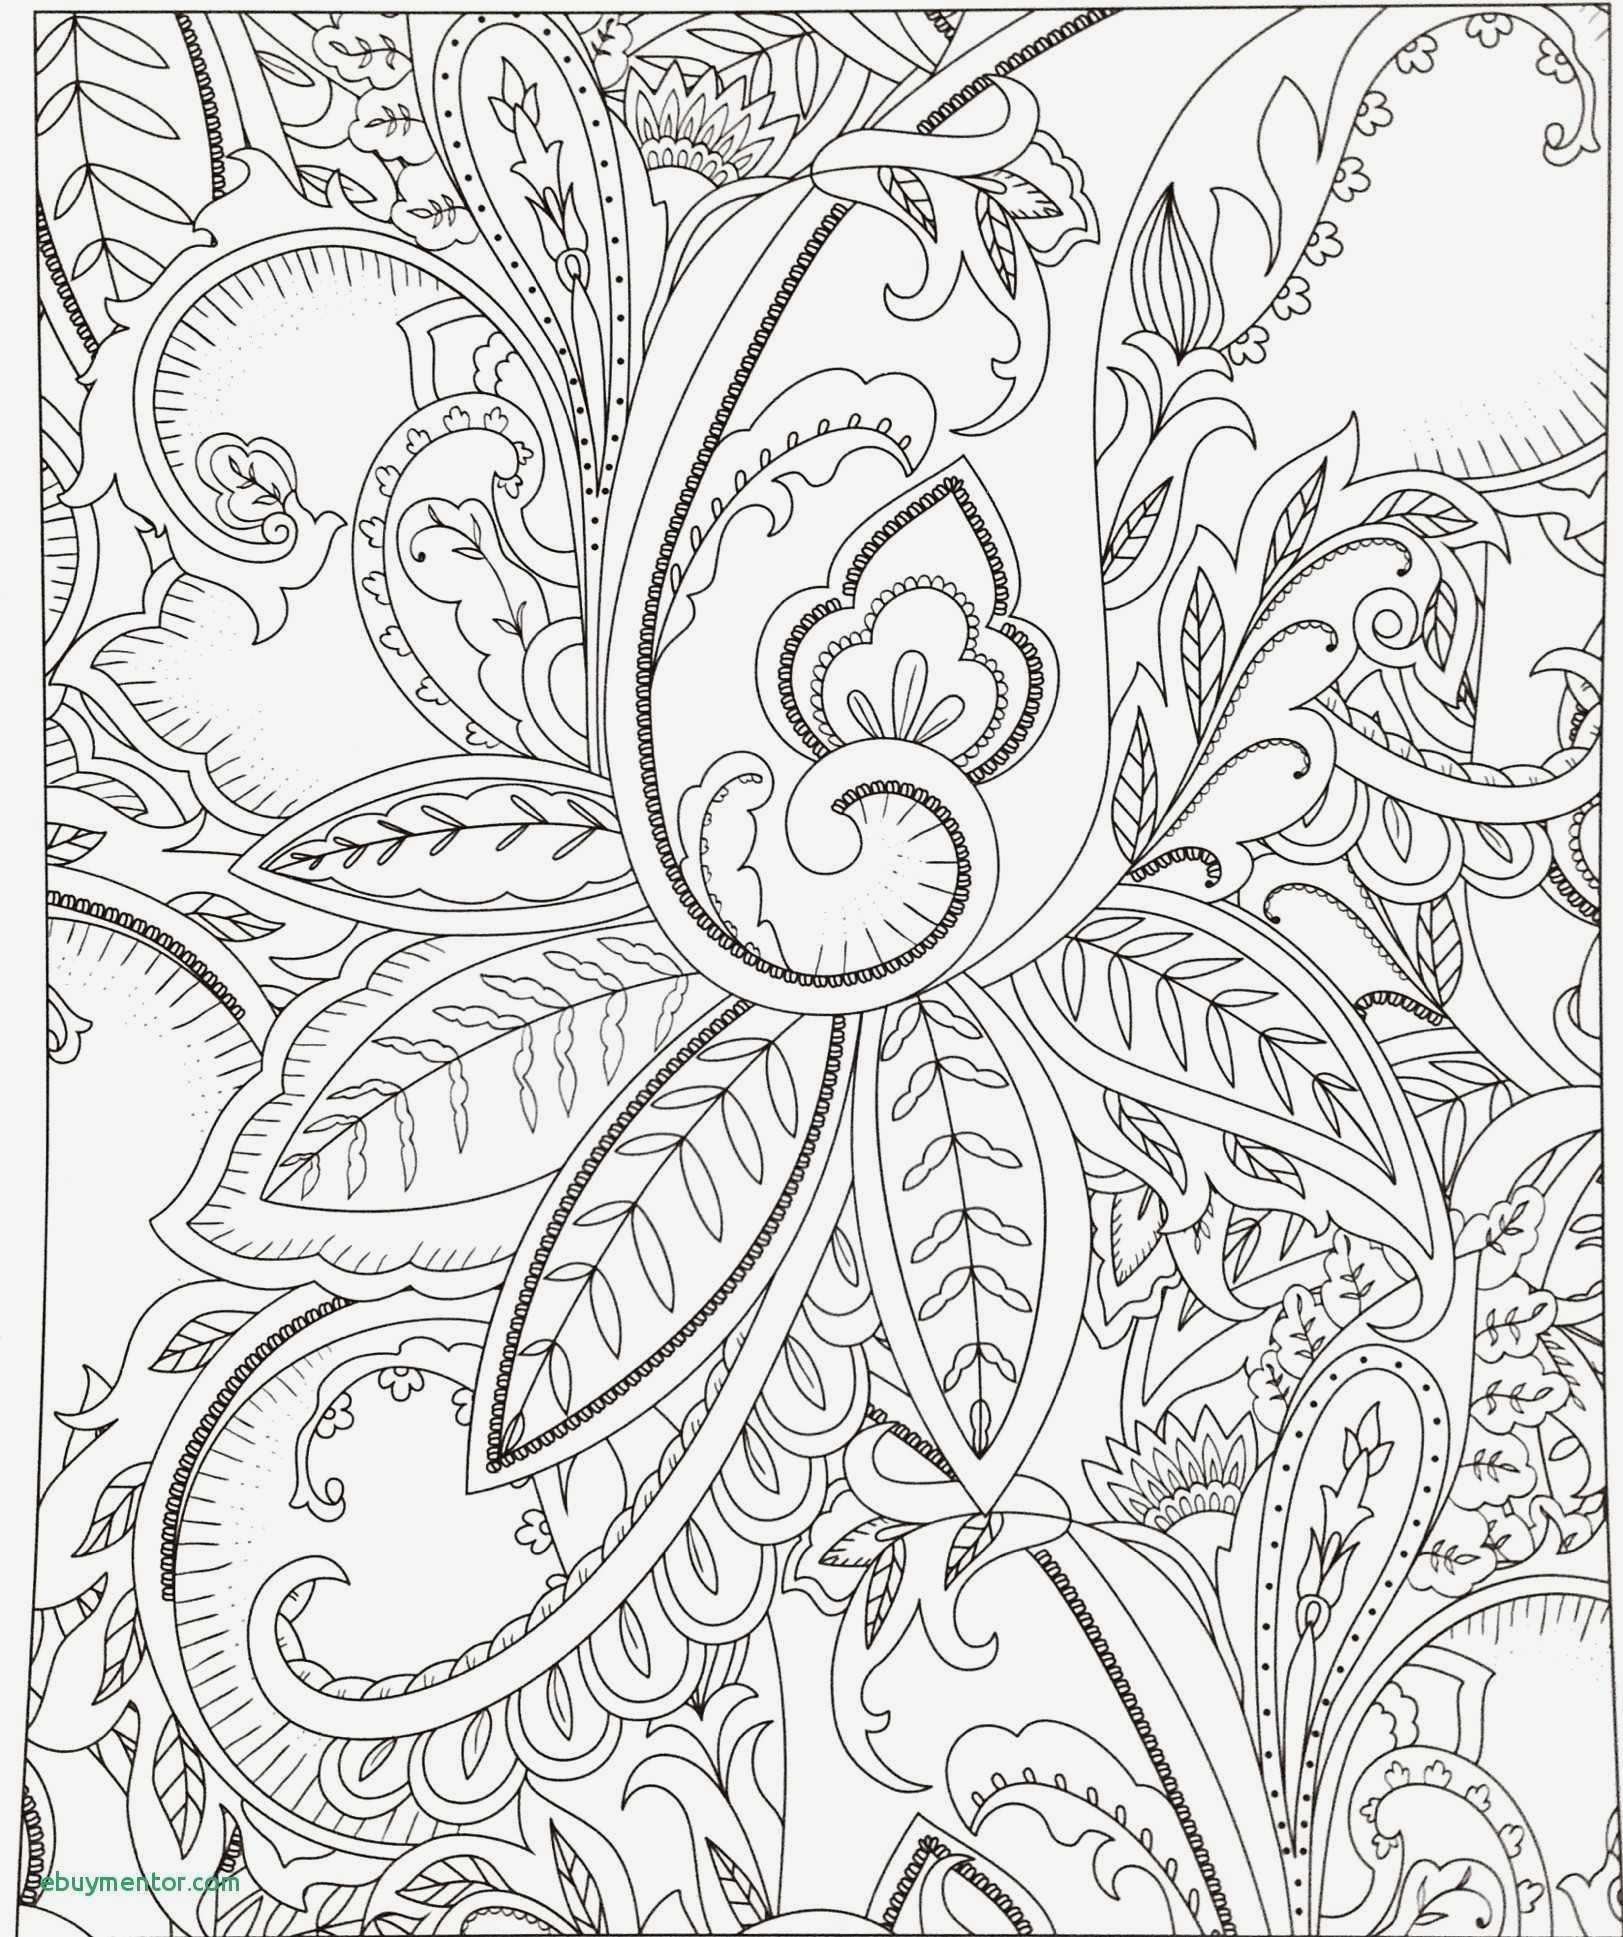 Ausmalbilder Weihnachten Supercoloring Das Beste Von 24 Printable Coloring Pages for Teens Download Coloring Sheets Fotos